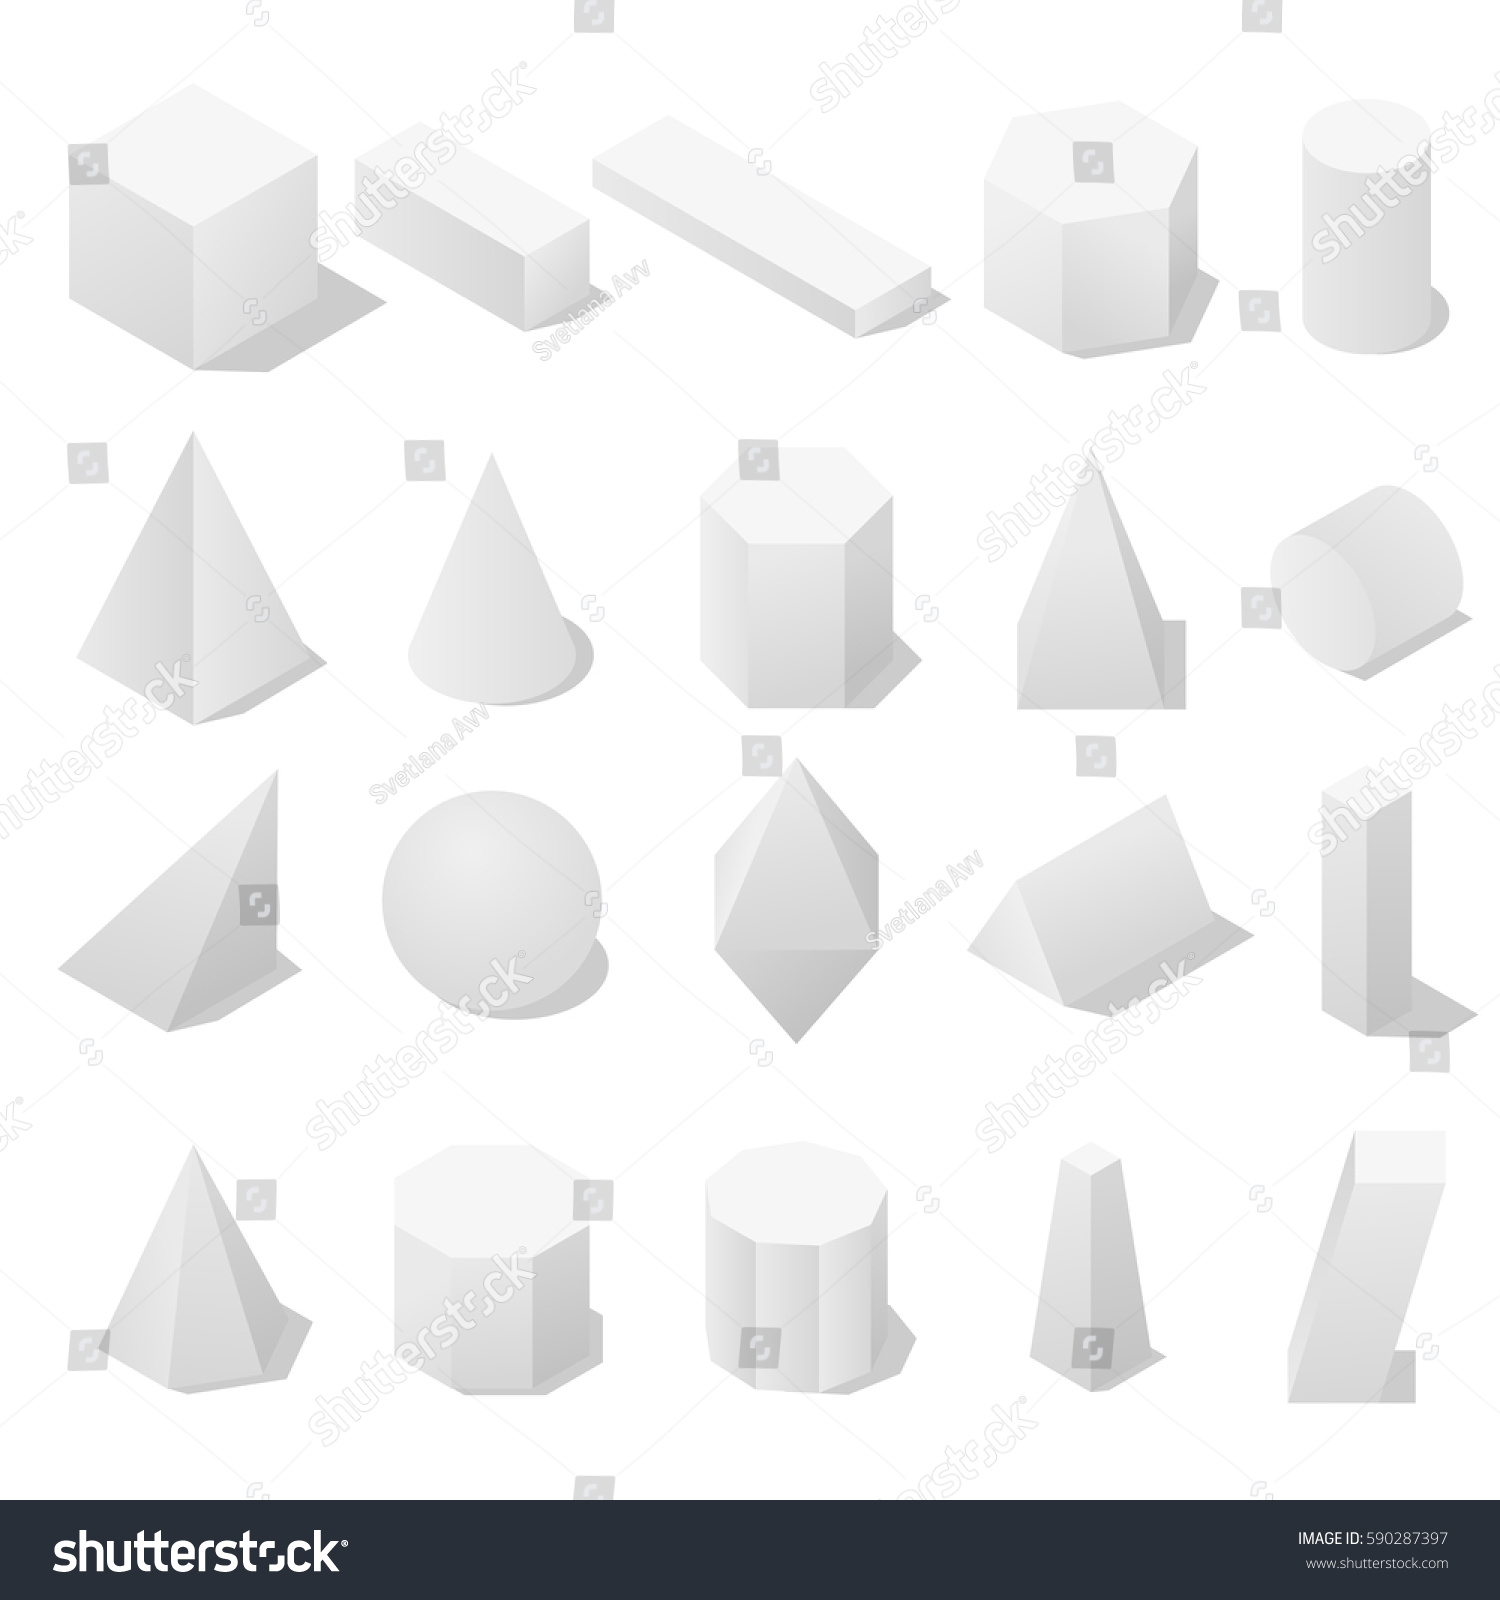 Basic 3d Geometric Shapes Shadow Isometric Stock Vector